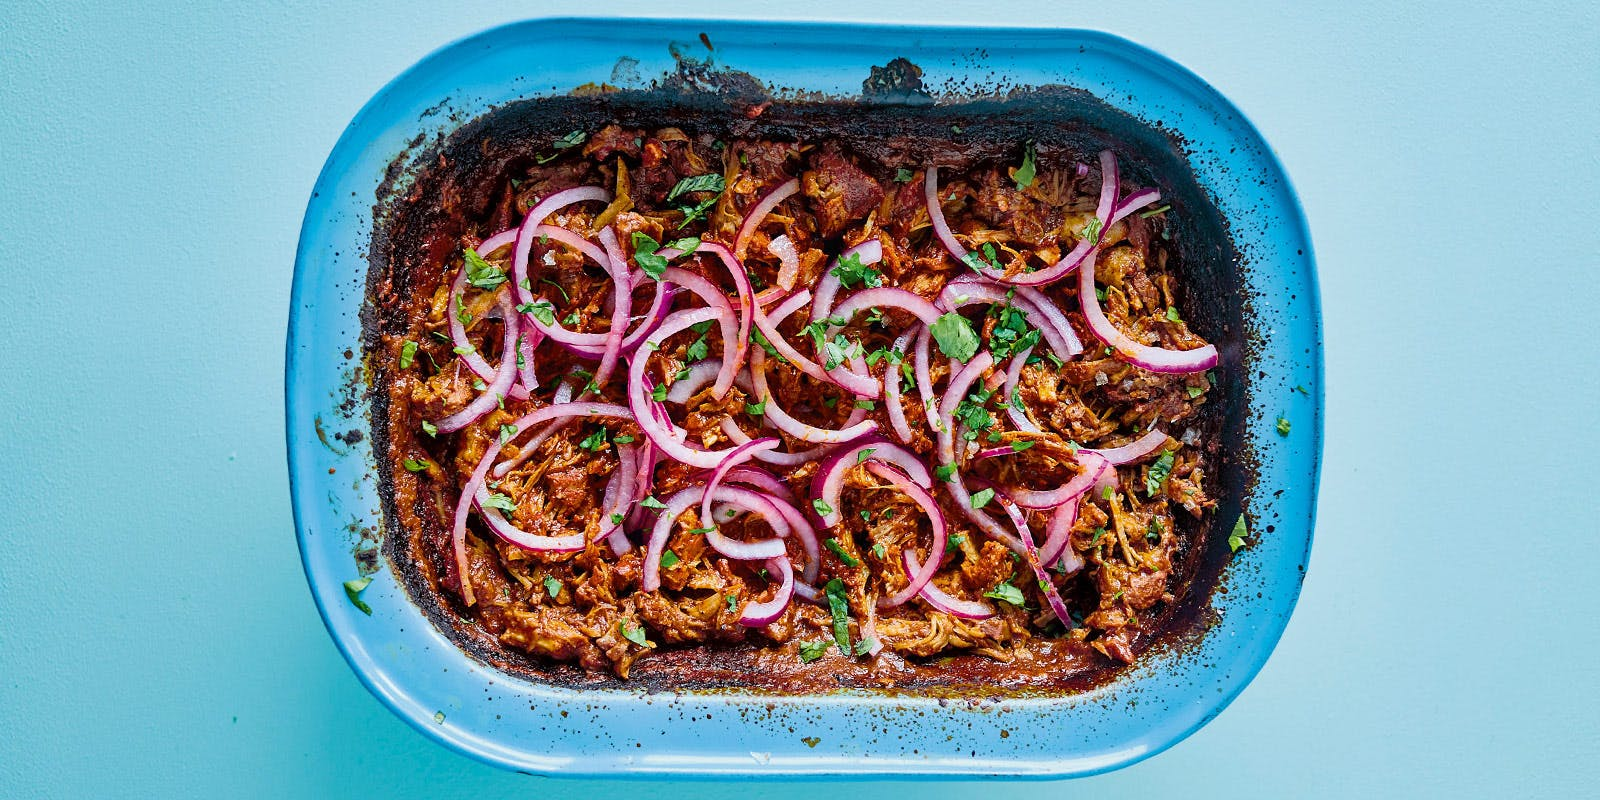 Slow-cooked pork pibil